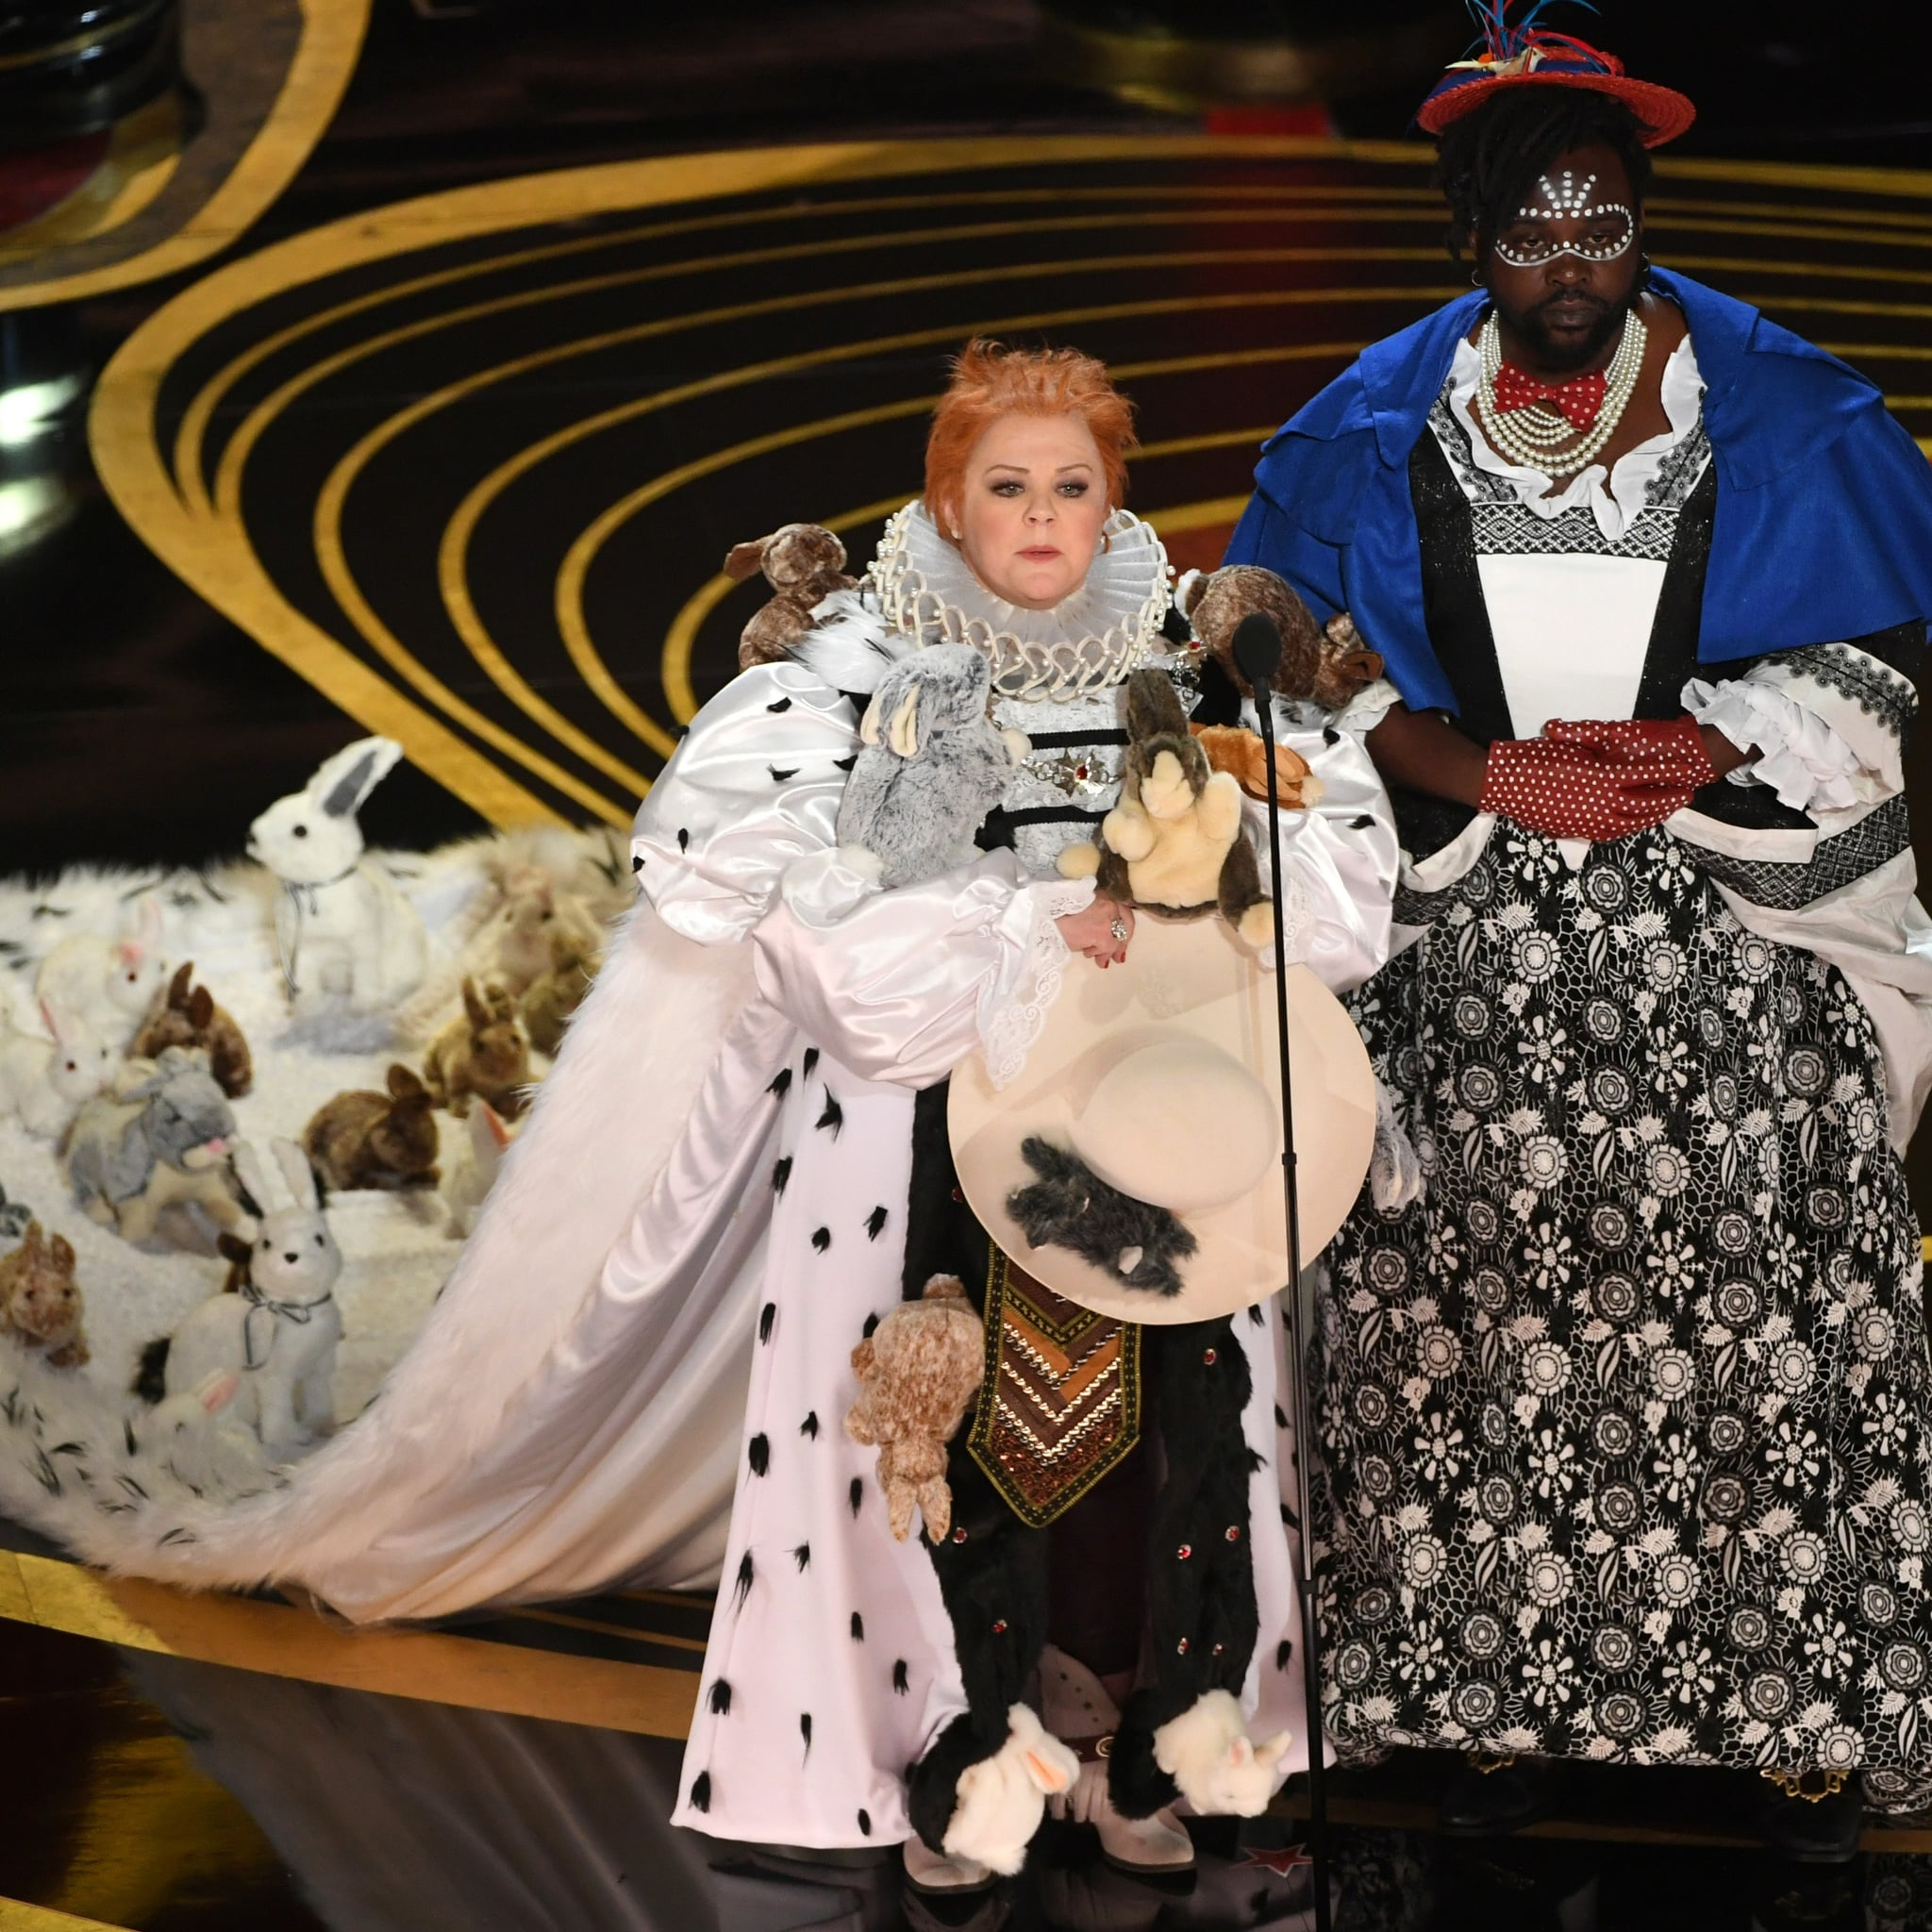 Melissa Mccarthy Brian Tyree Henry S Costumes At The Oscars Popsugar Celebrity Australia